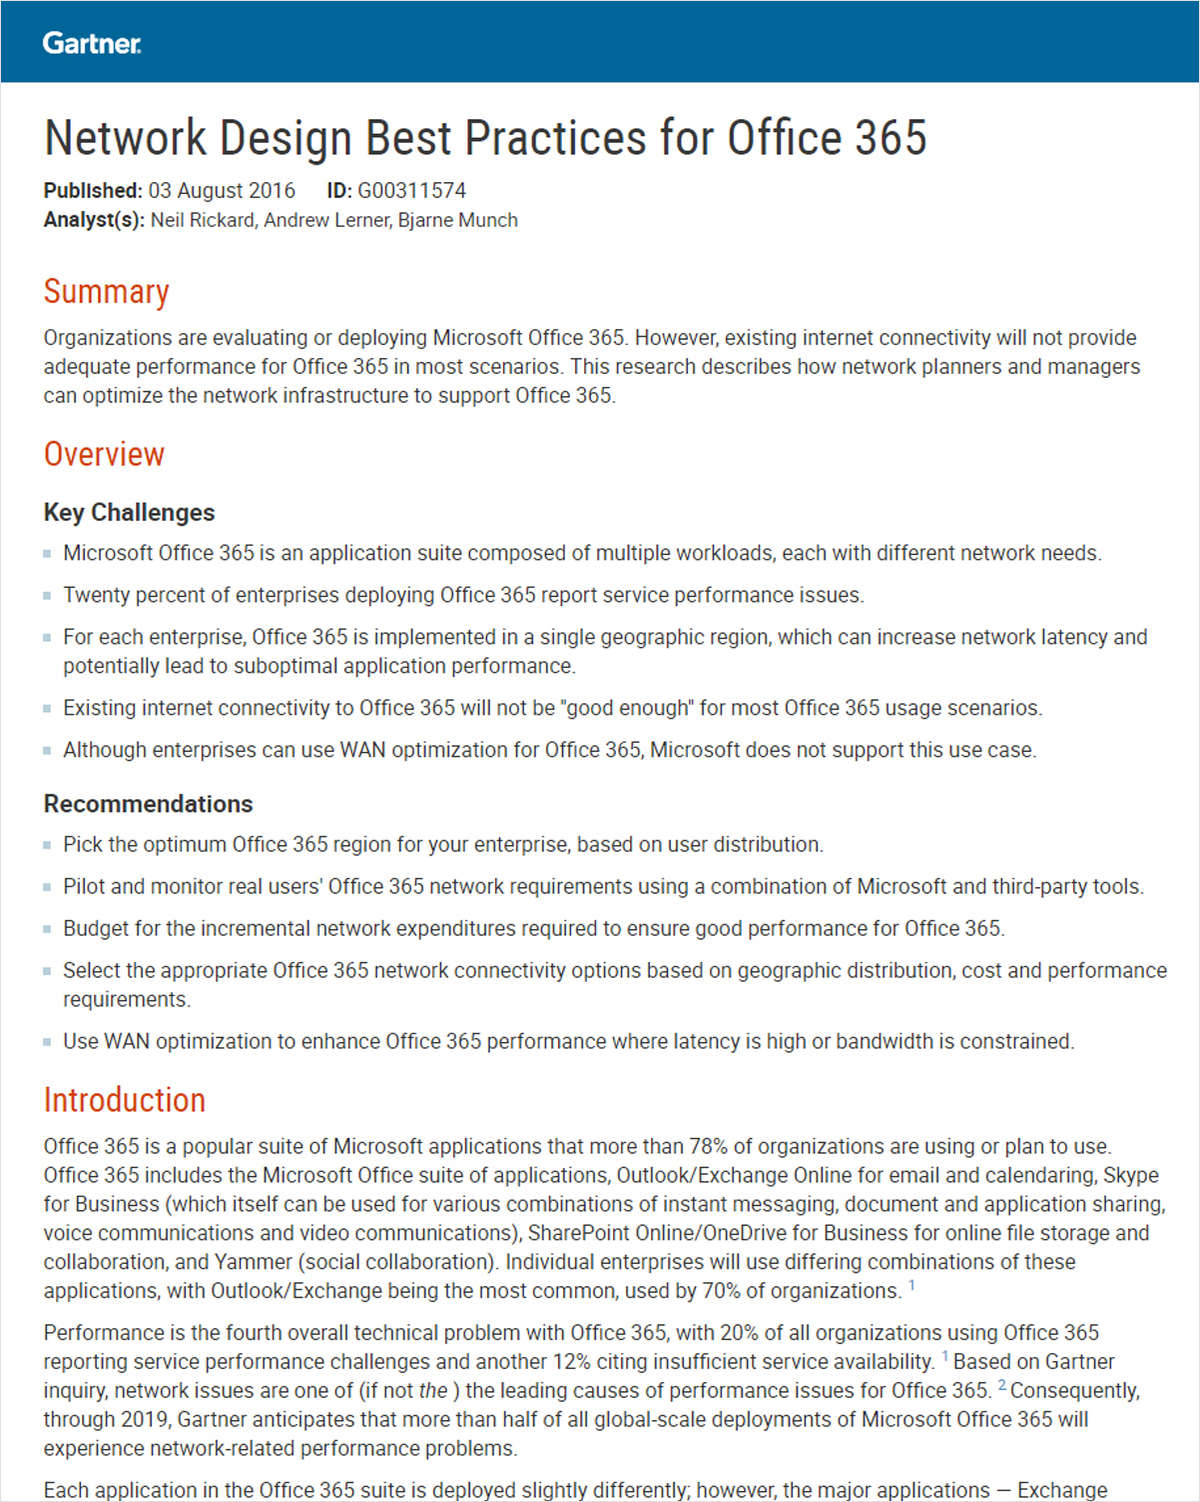 Network Design Best Practices for Office 365